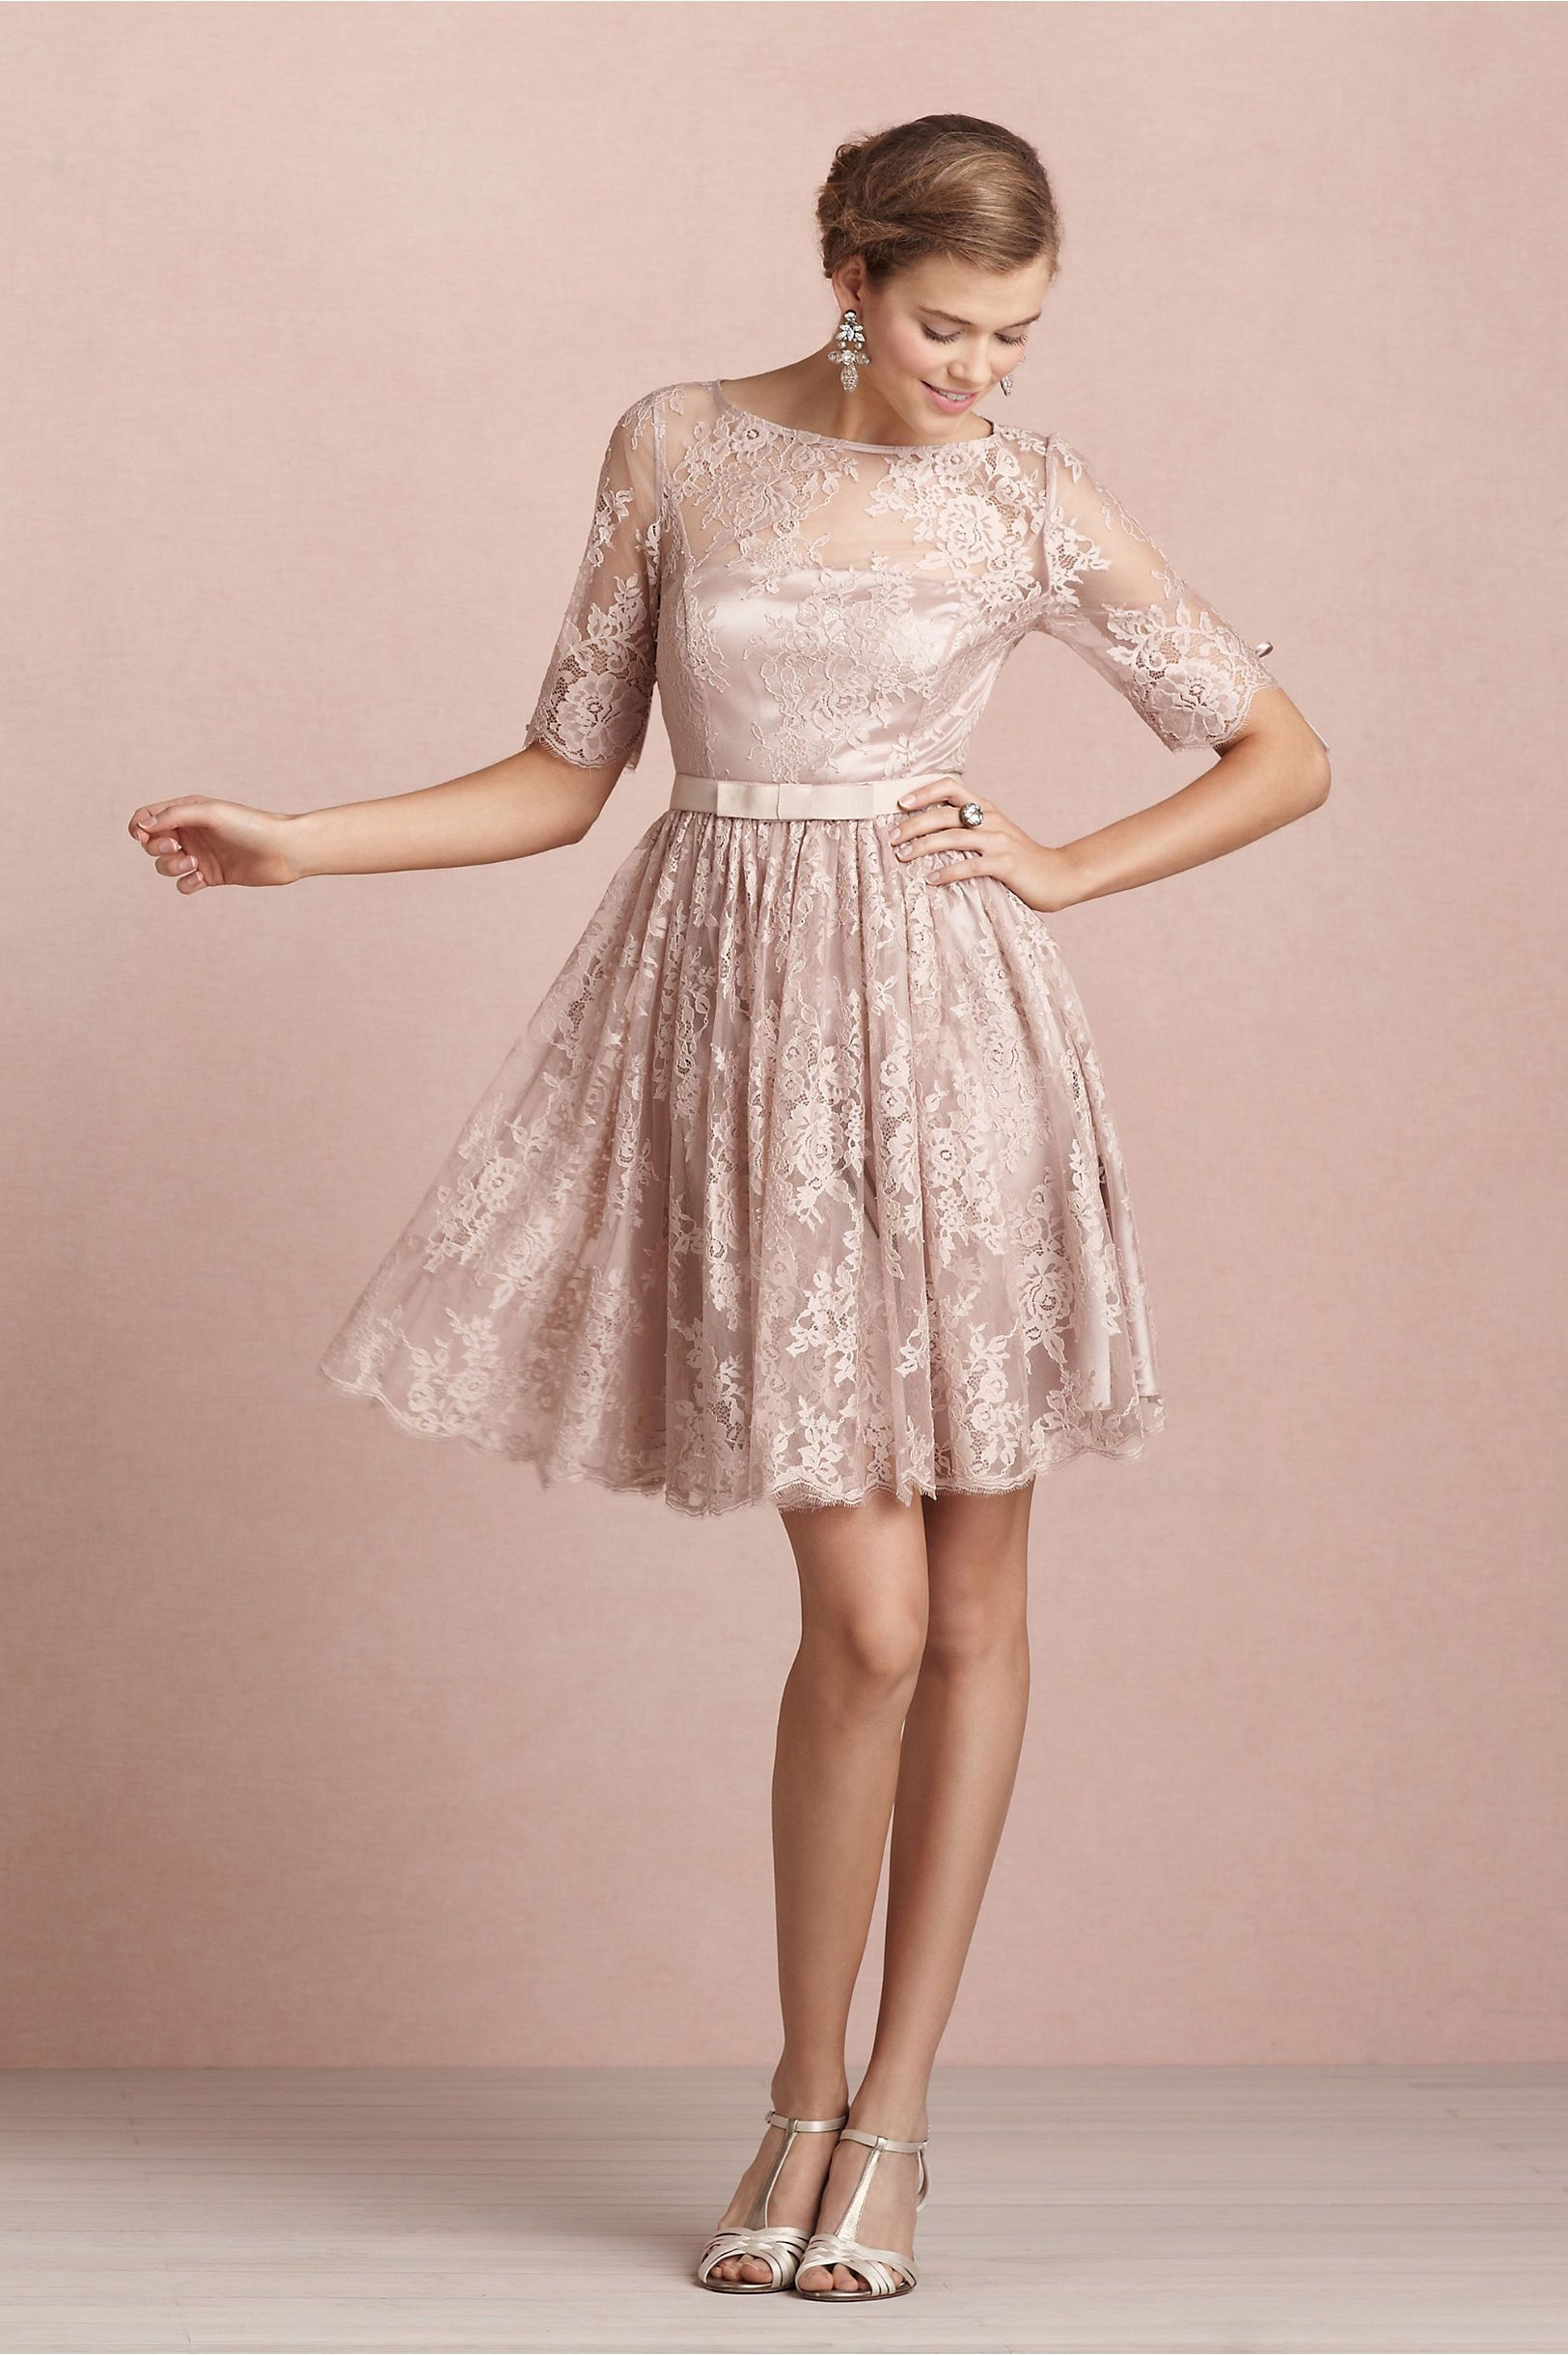 Tea Rose Dress in Bridesmaids & Partygoers Dresses at BHLDN | A ...